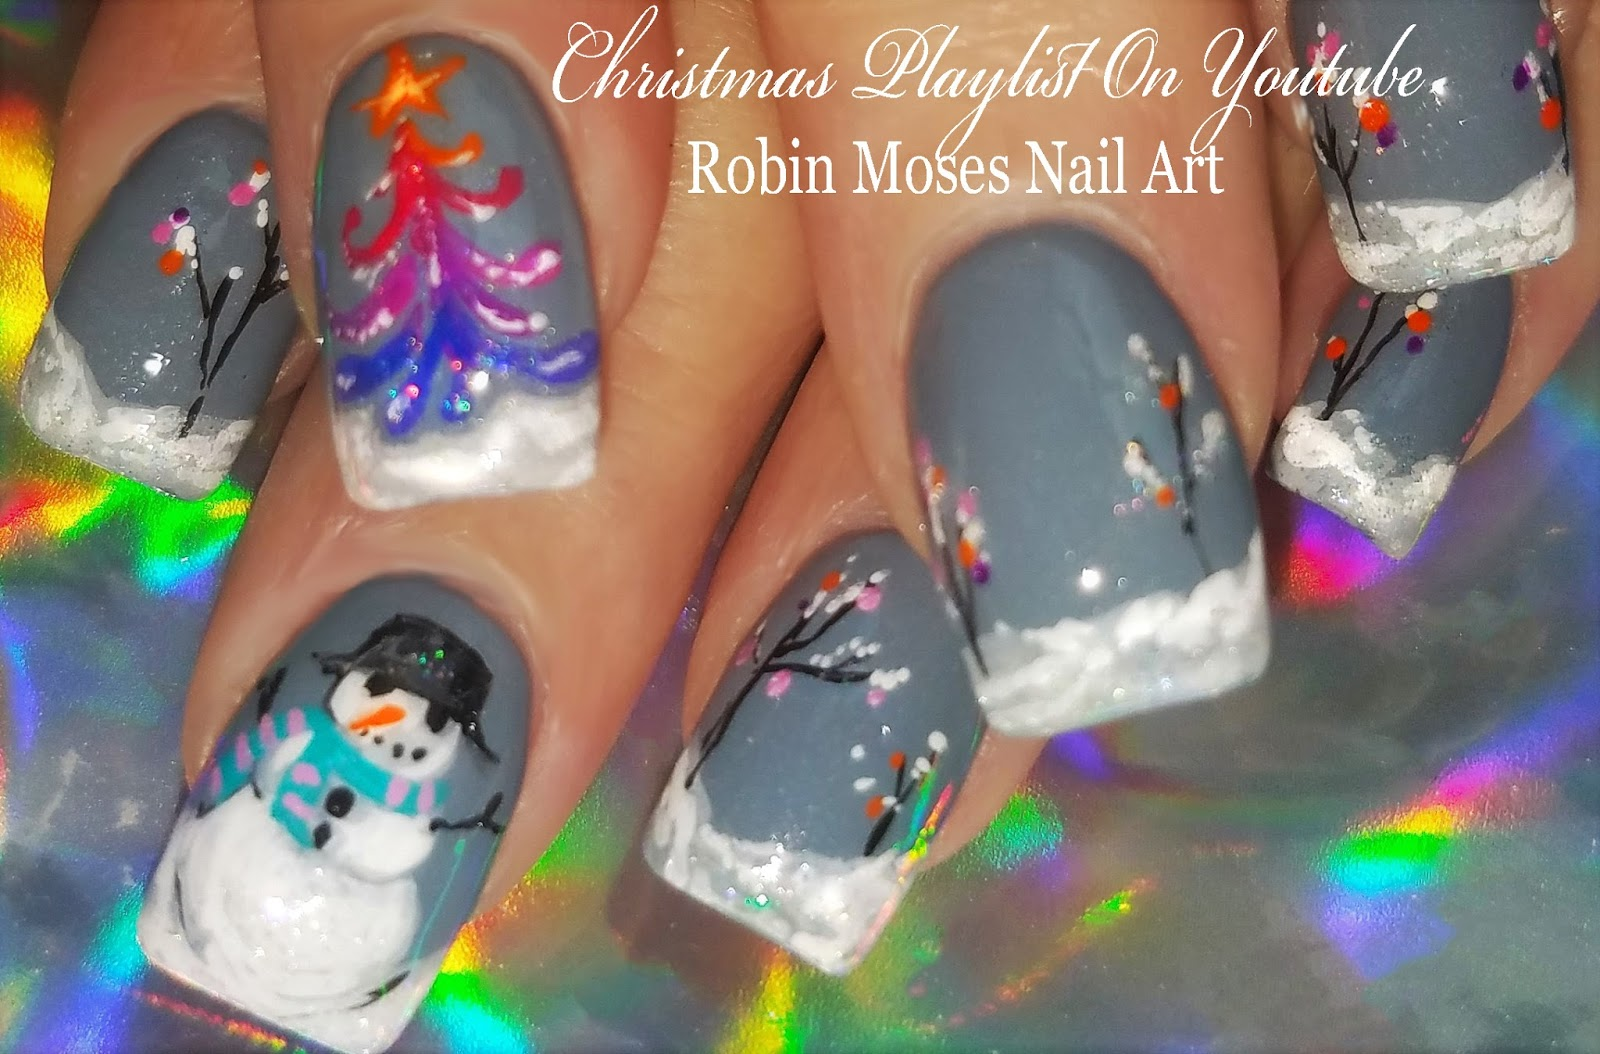 Robin moses nail art get my nail art brushes worldwide on shopify at httpsrobinmosesnailart which links to my store prinsesfo Choice Image